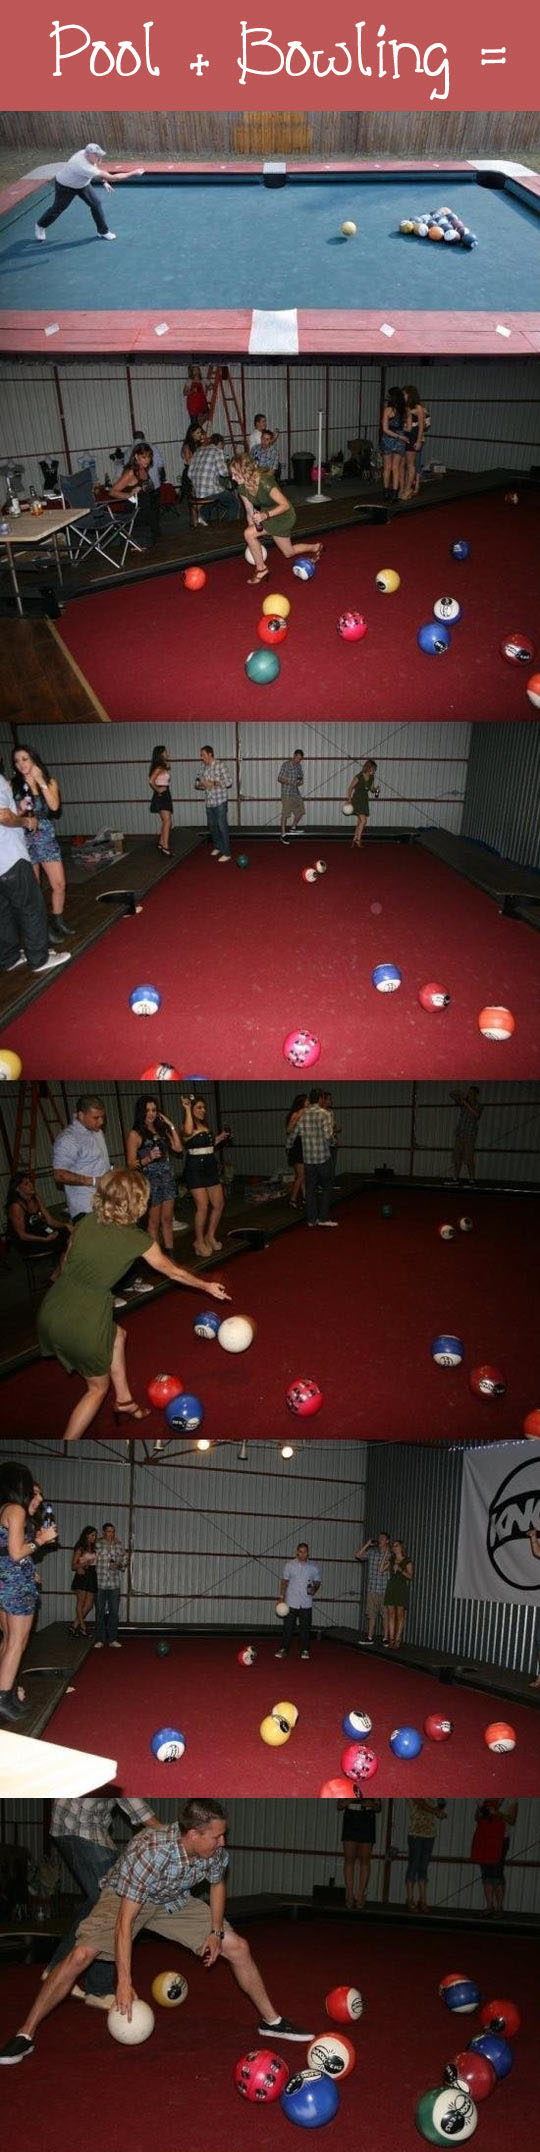 If You Mix Pool And Bowling